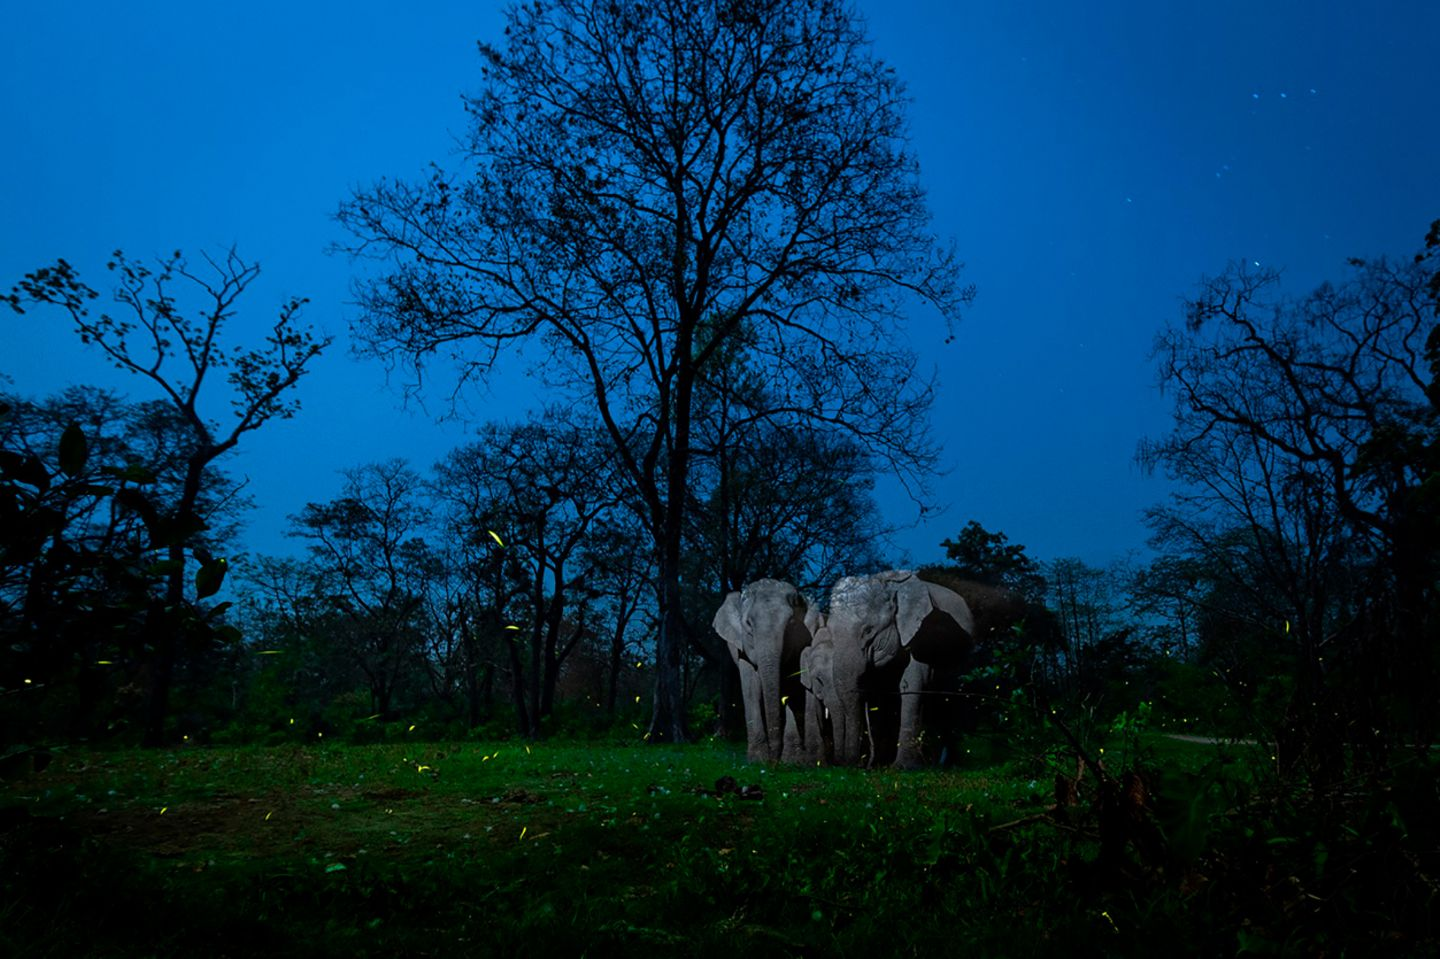 Gagandeep Matharoo/Nature inFocus Photograph of the Year